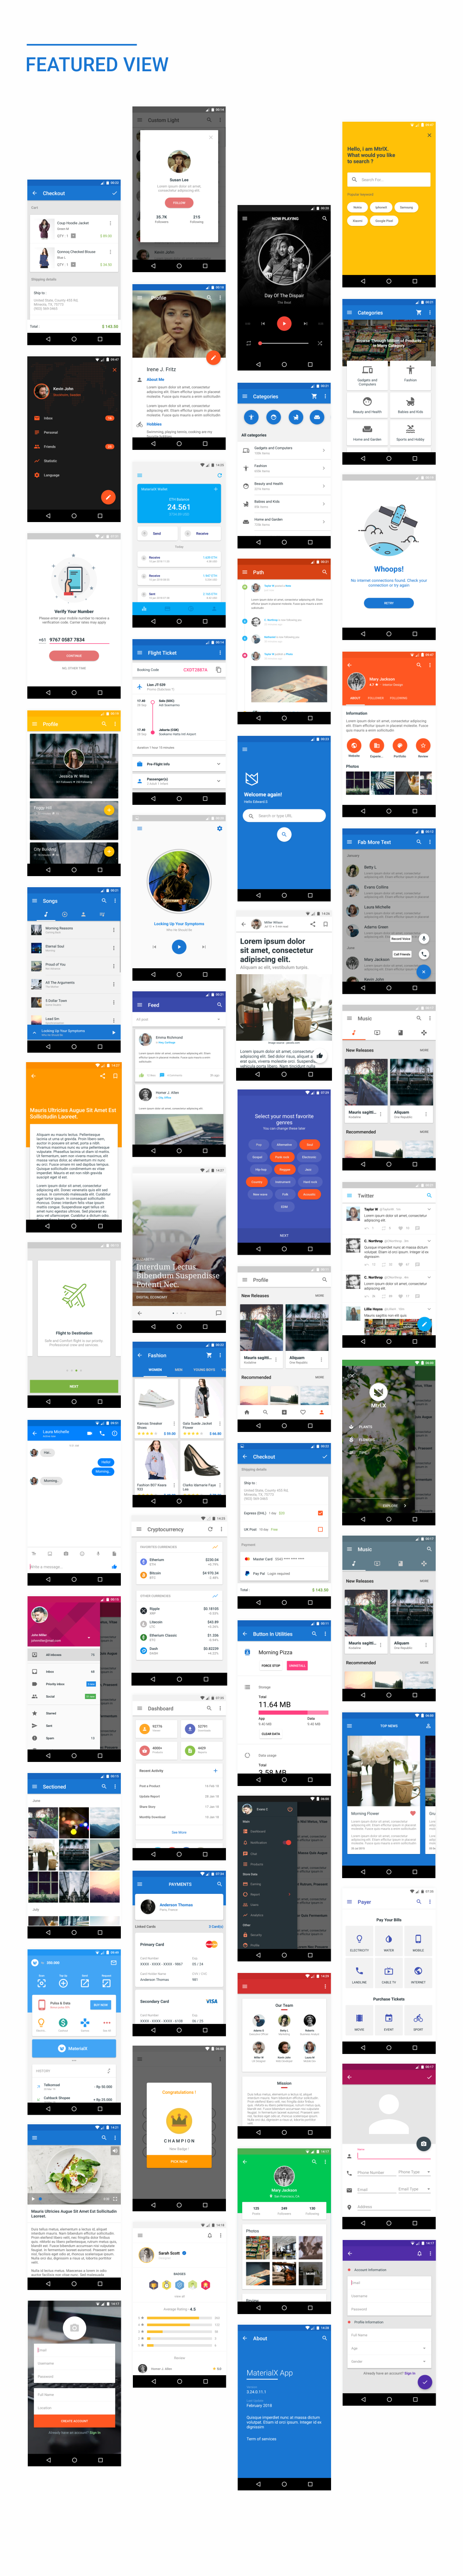 MaterialX - Android Material Design UI Components 2.4 - 33